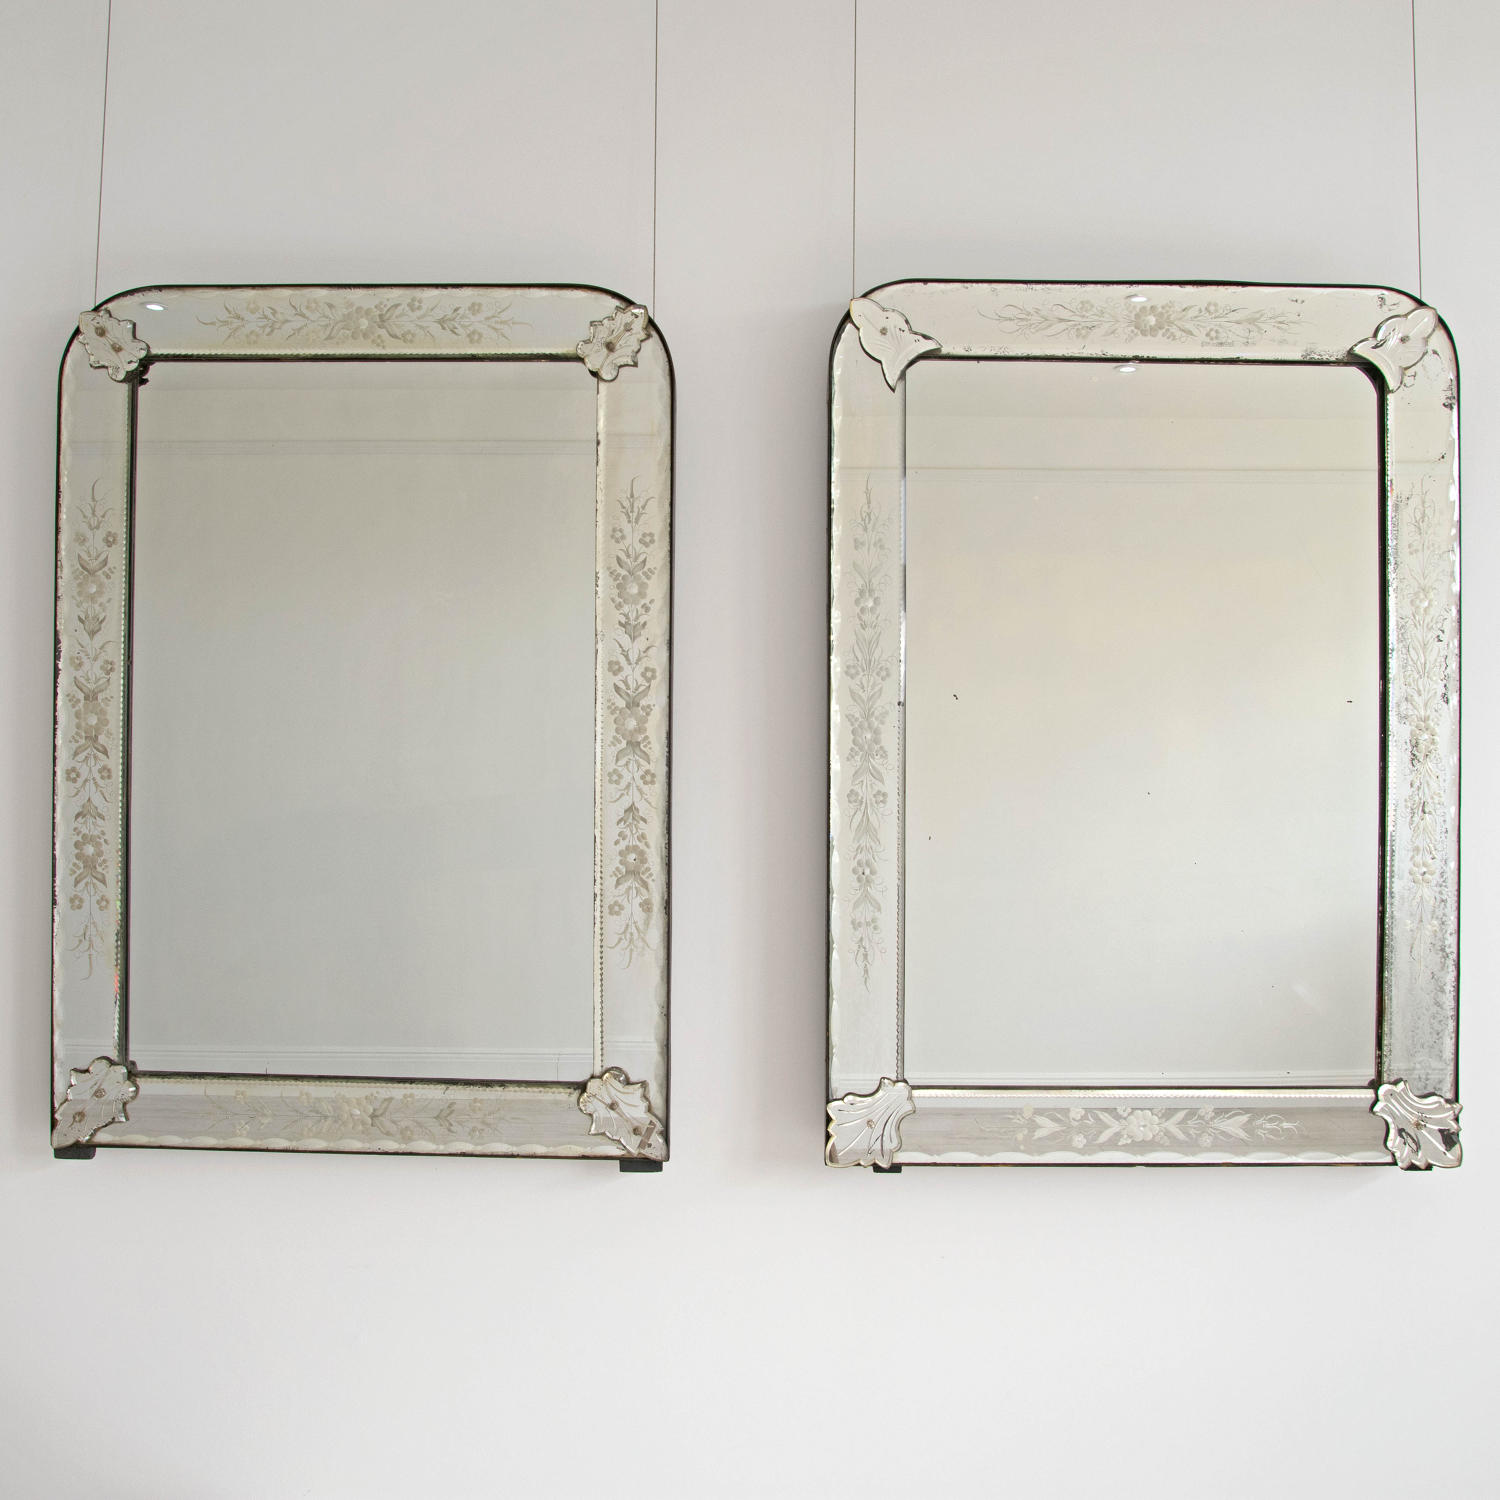 SUPERB MATCHED PAIR OF ANTIQUE VENETIAN MIRRORS